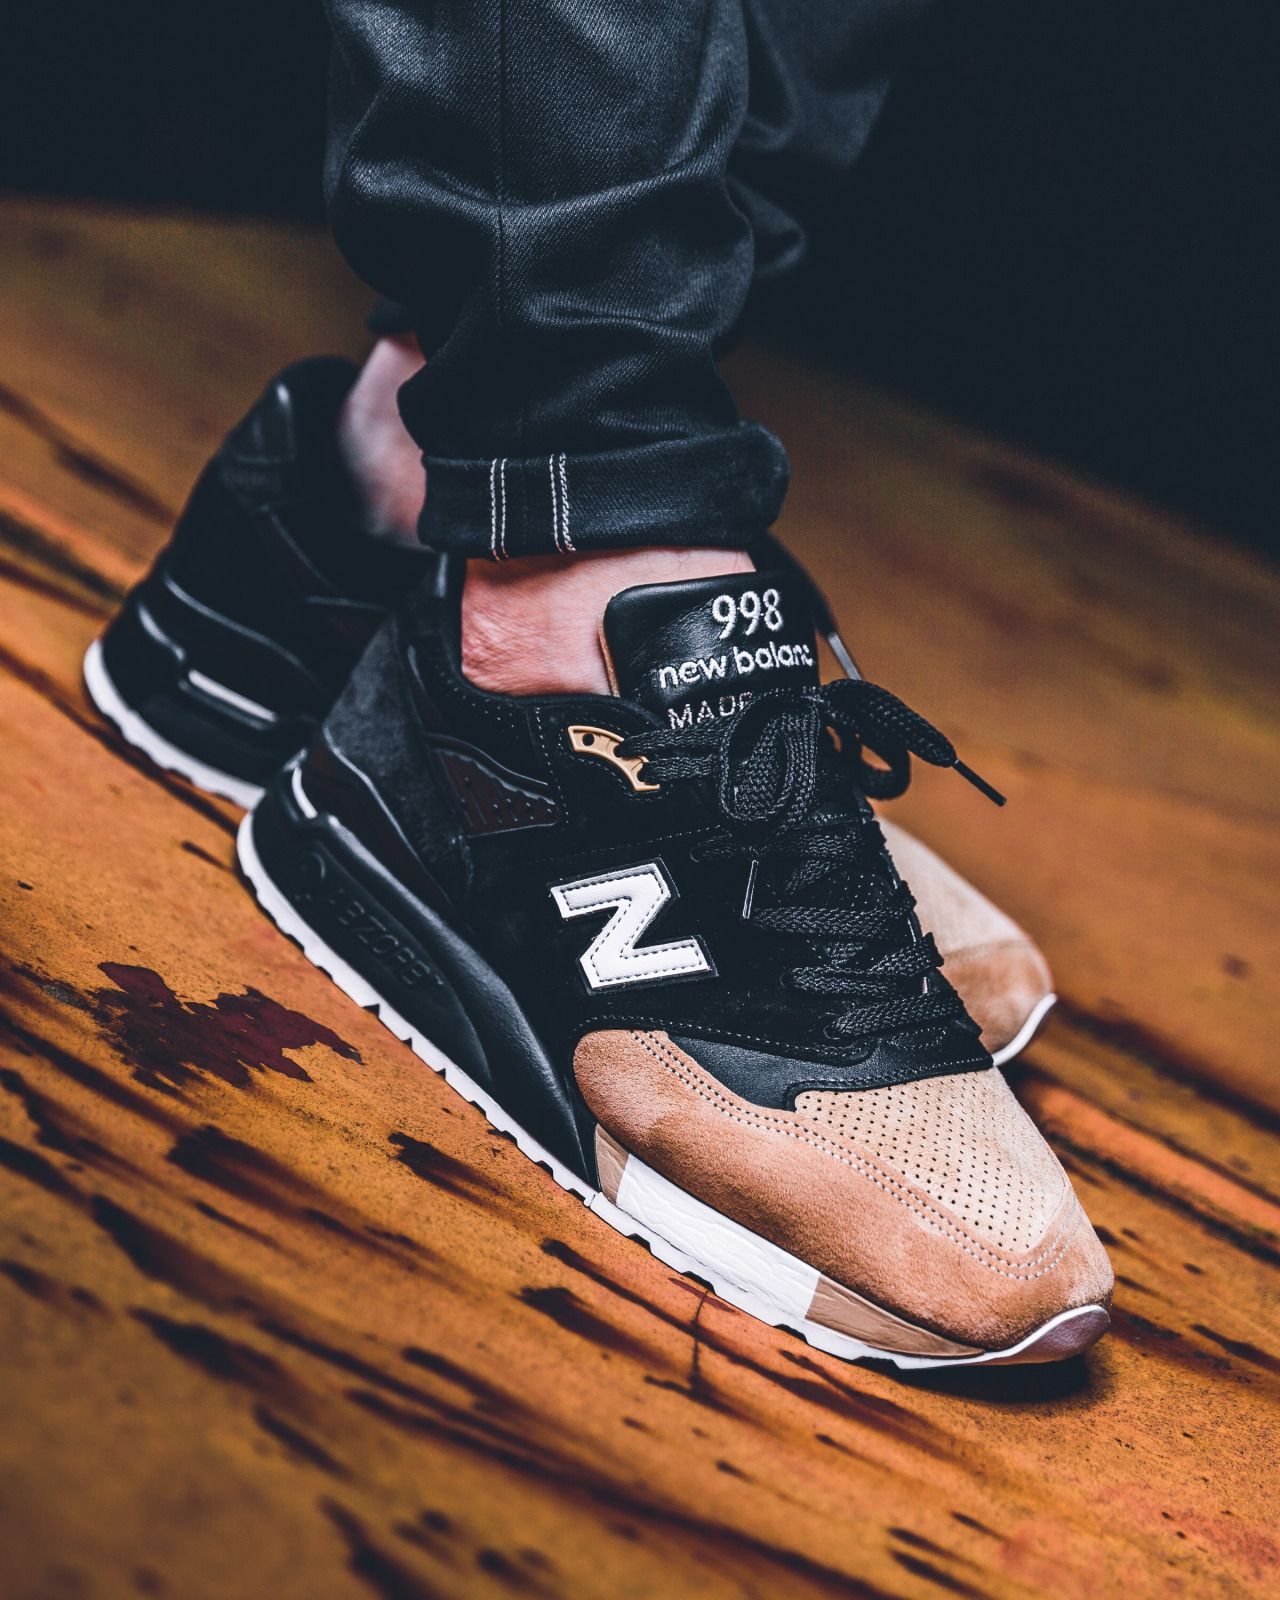 new balance 998 prmr black beige